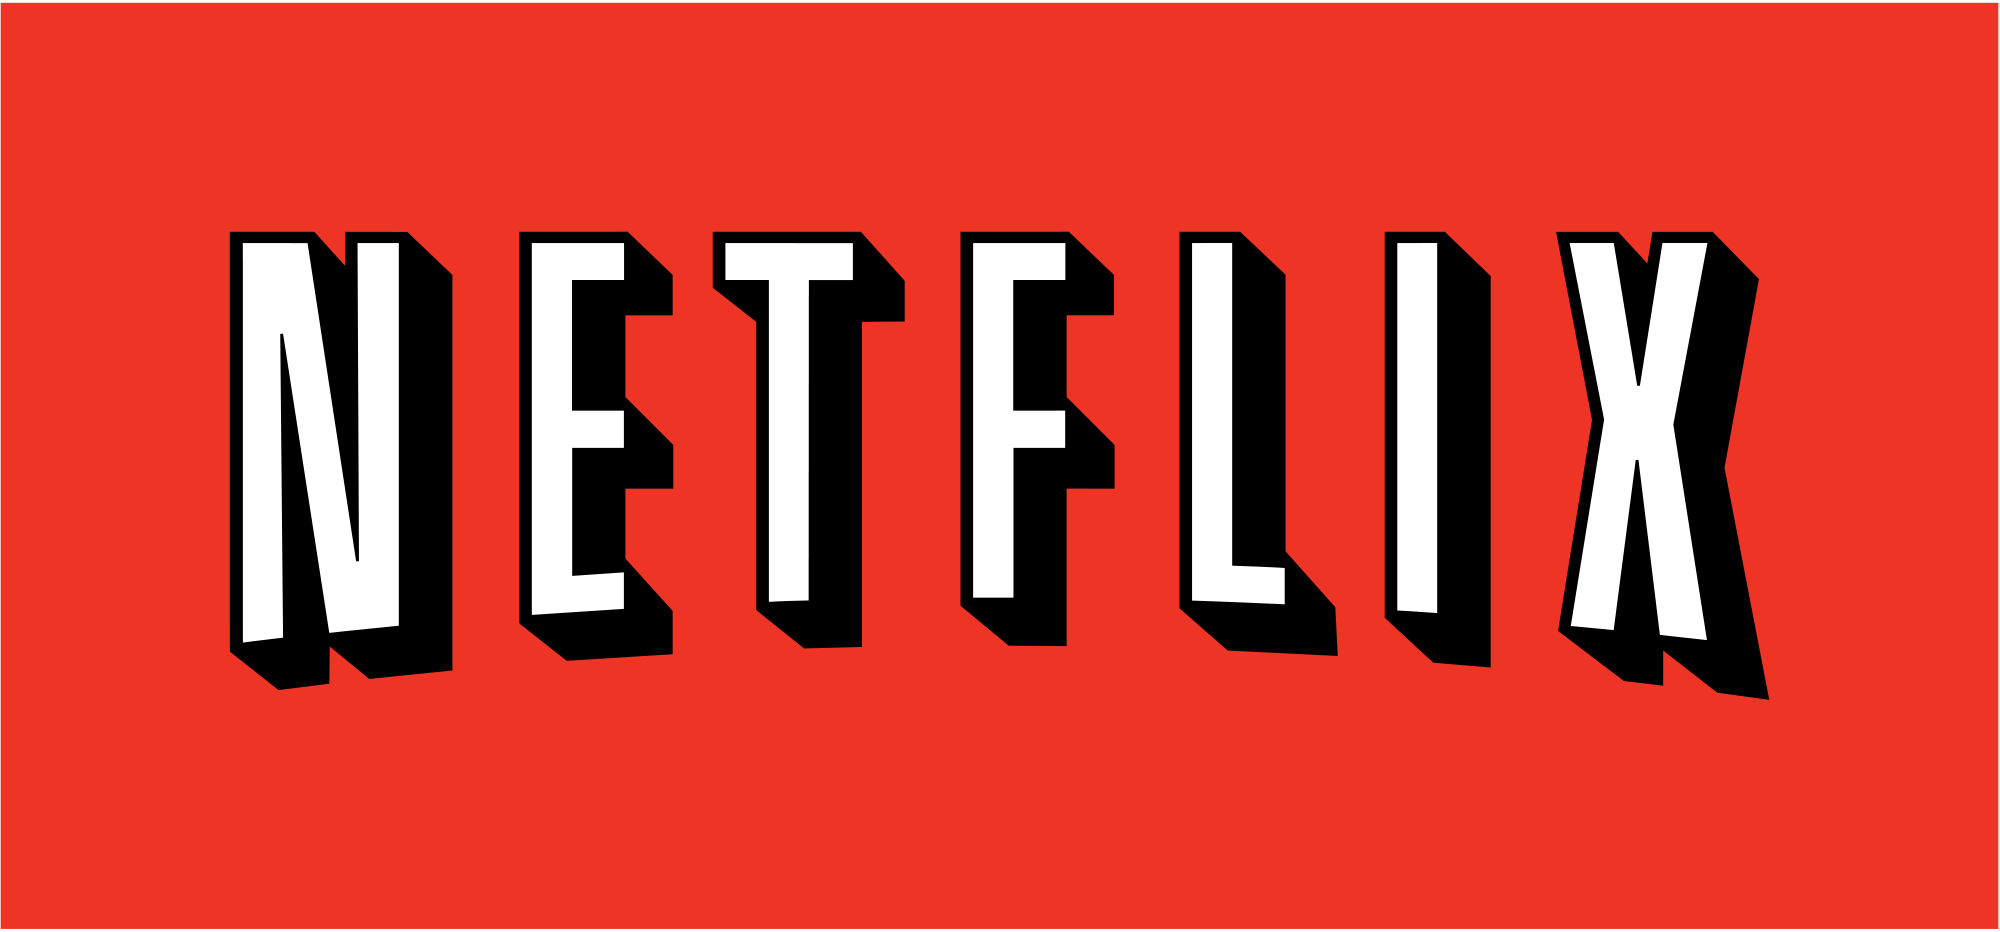 Netflix Begins Audio Description for Visually Impaired